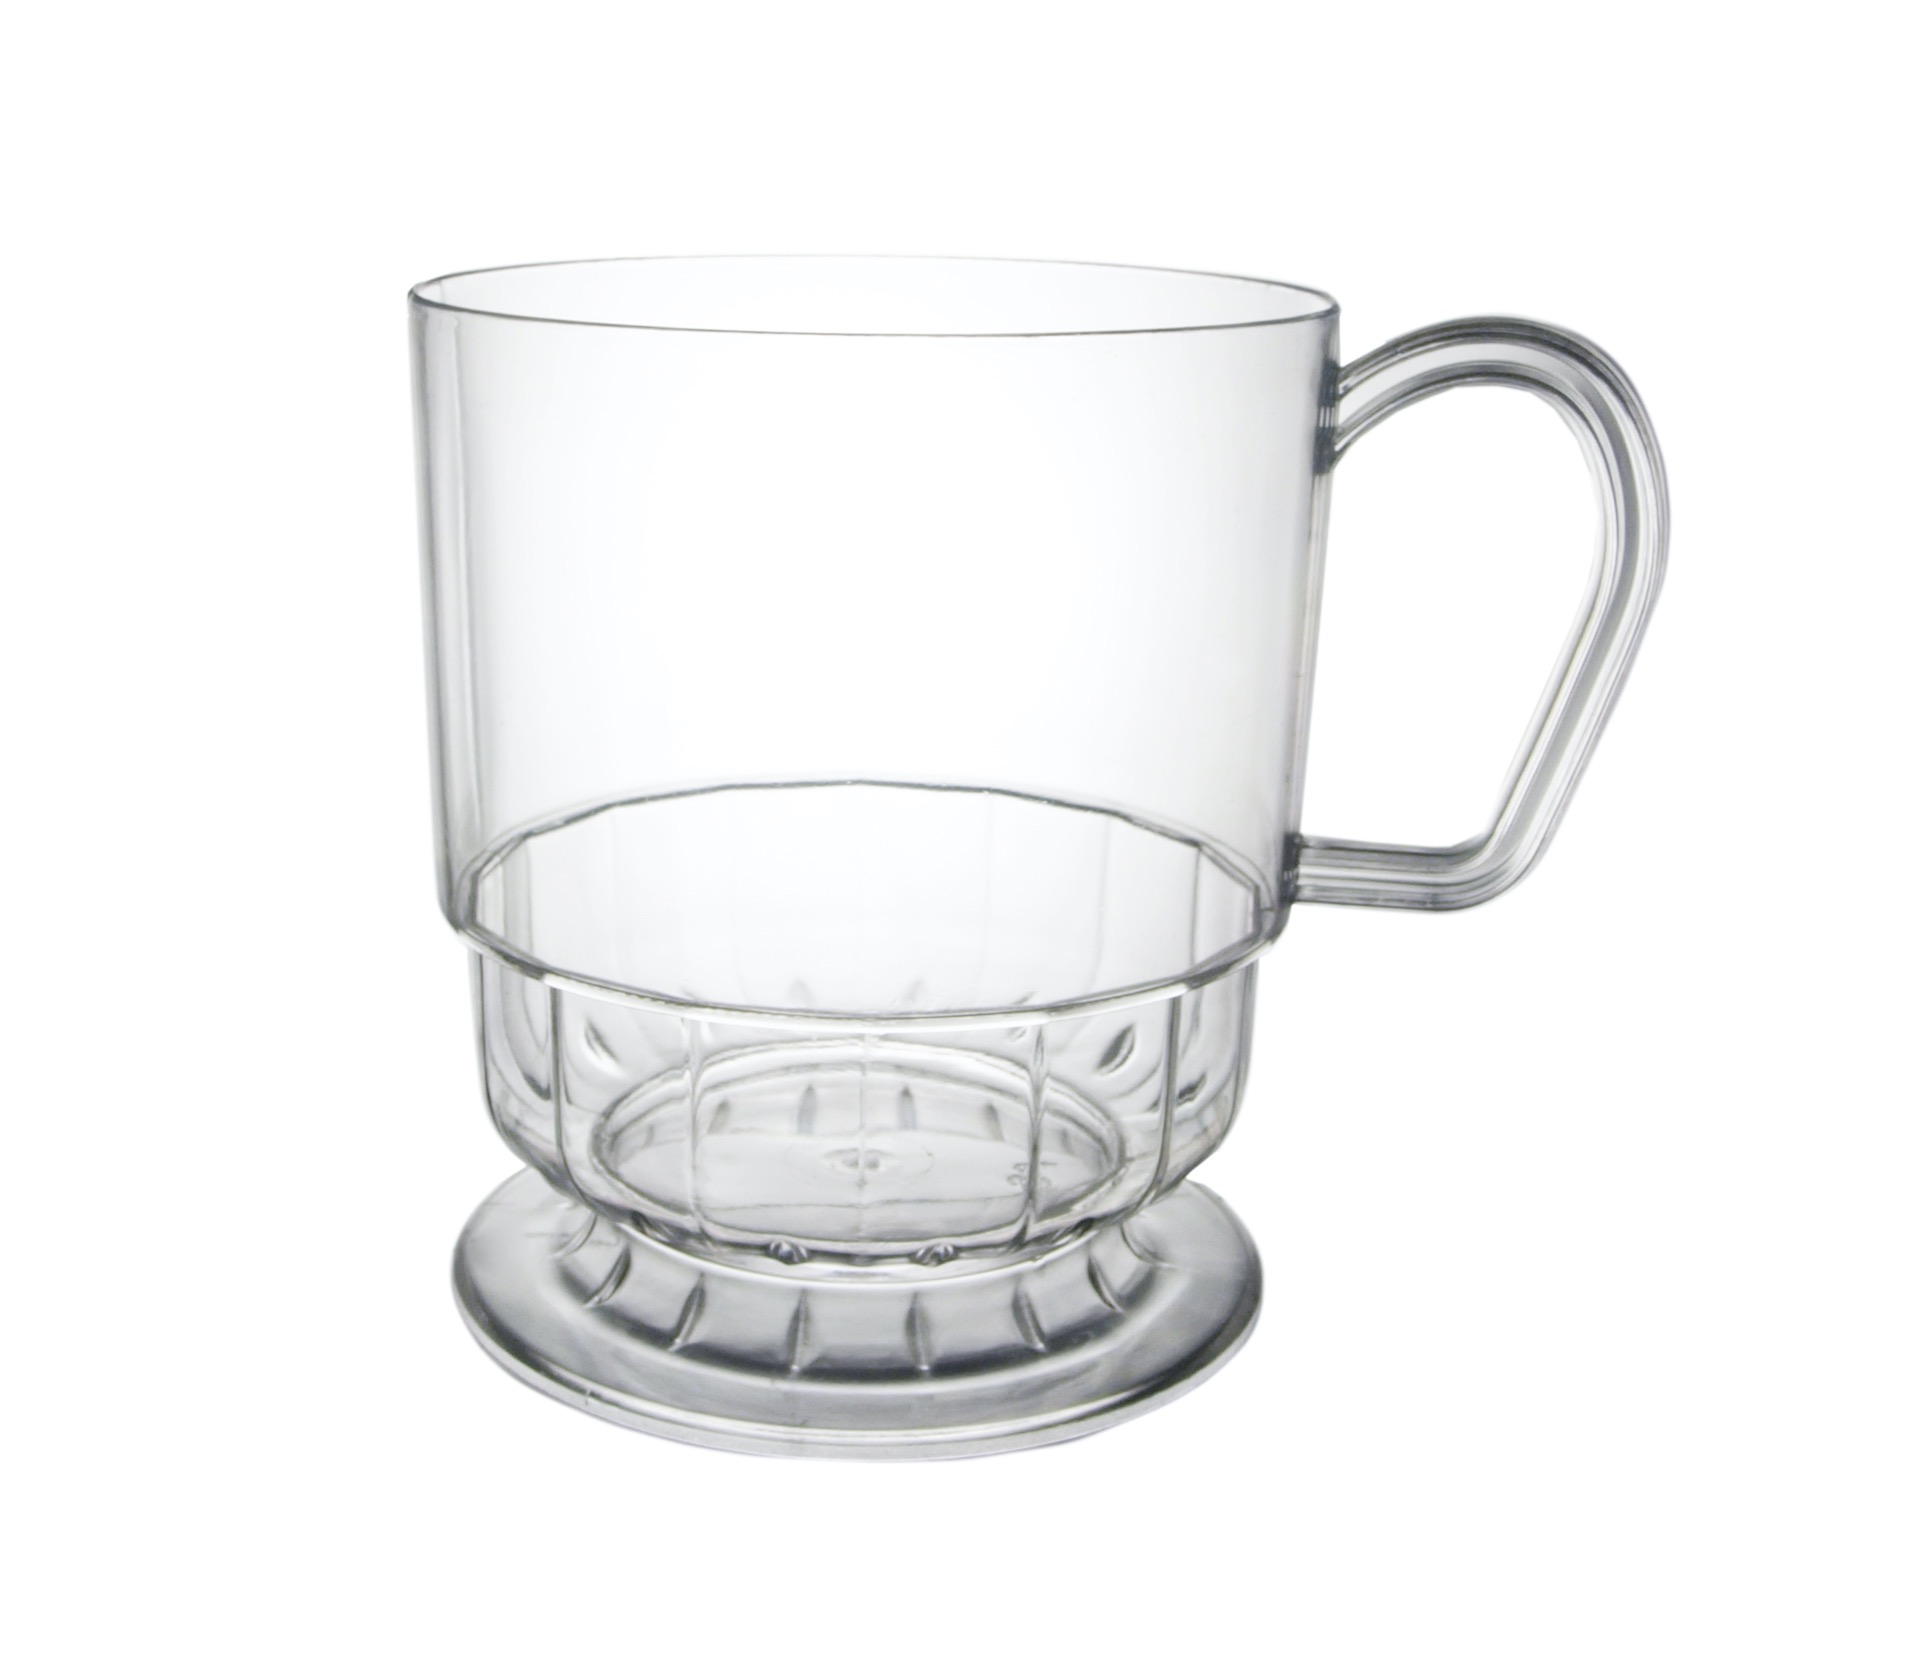 CUP 8OZ. DELUXE COFFEE CLEAR 10/PK